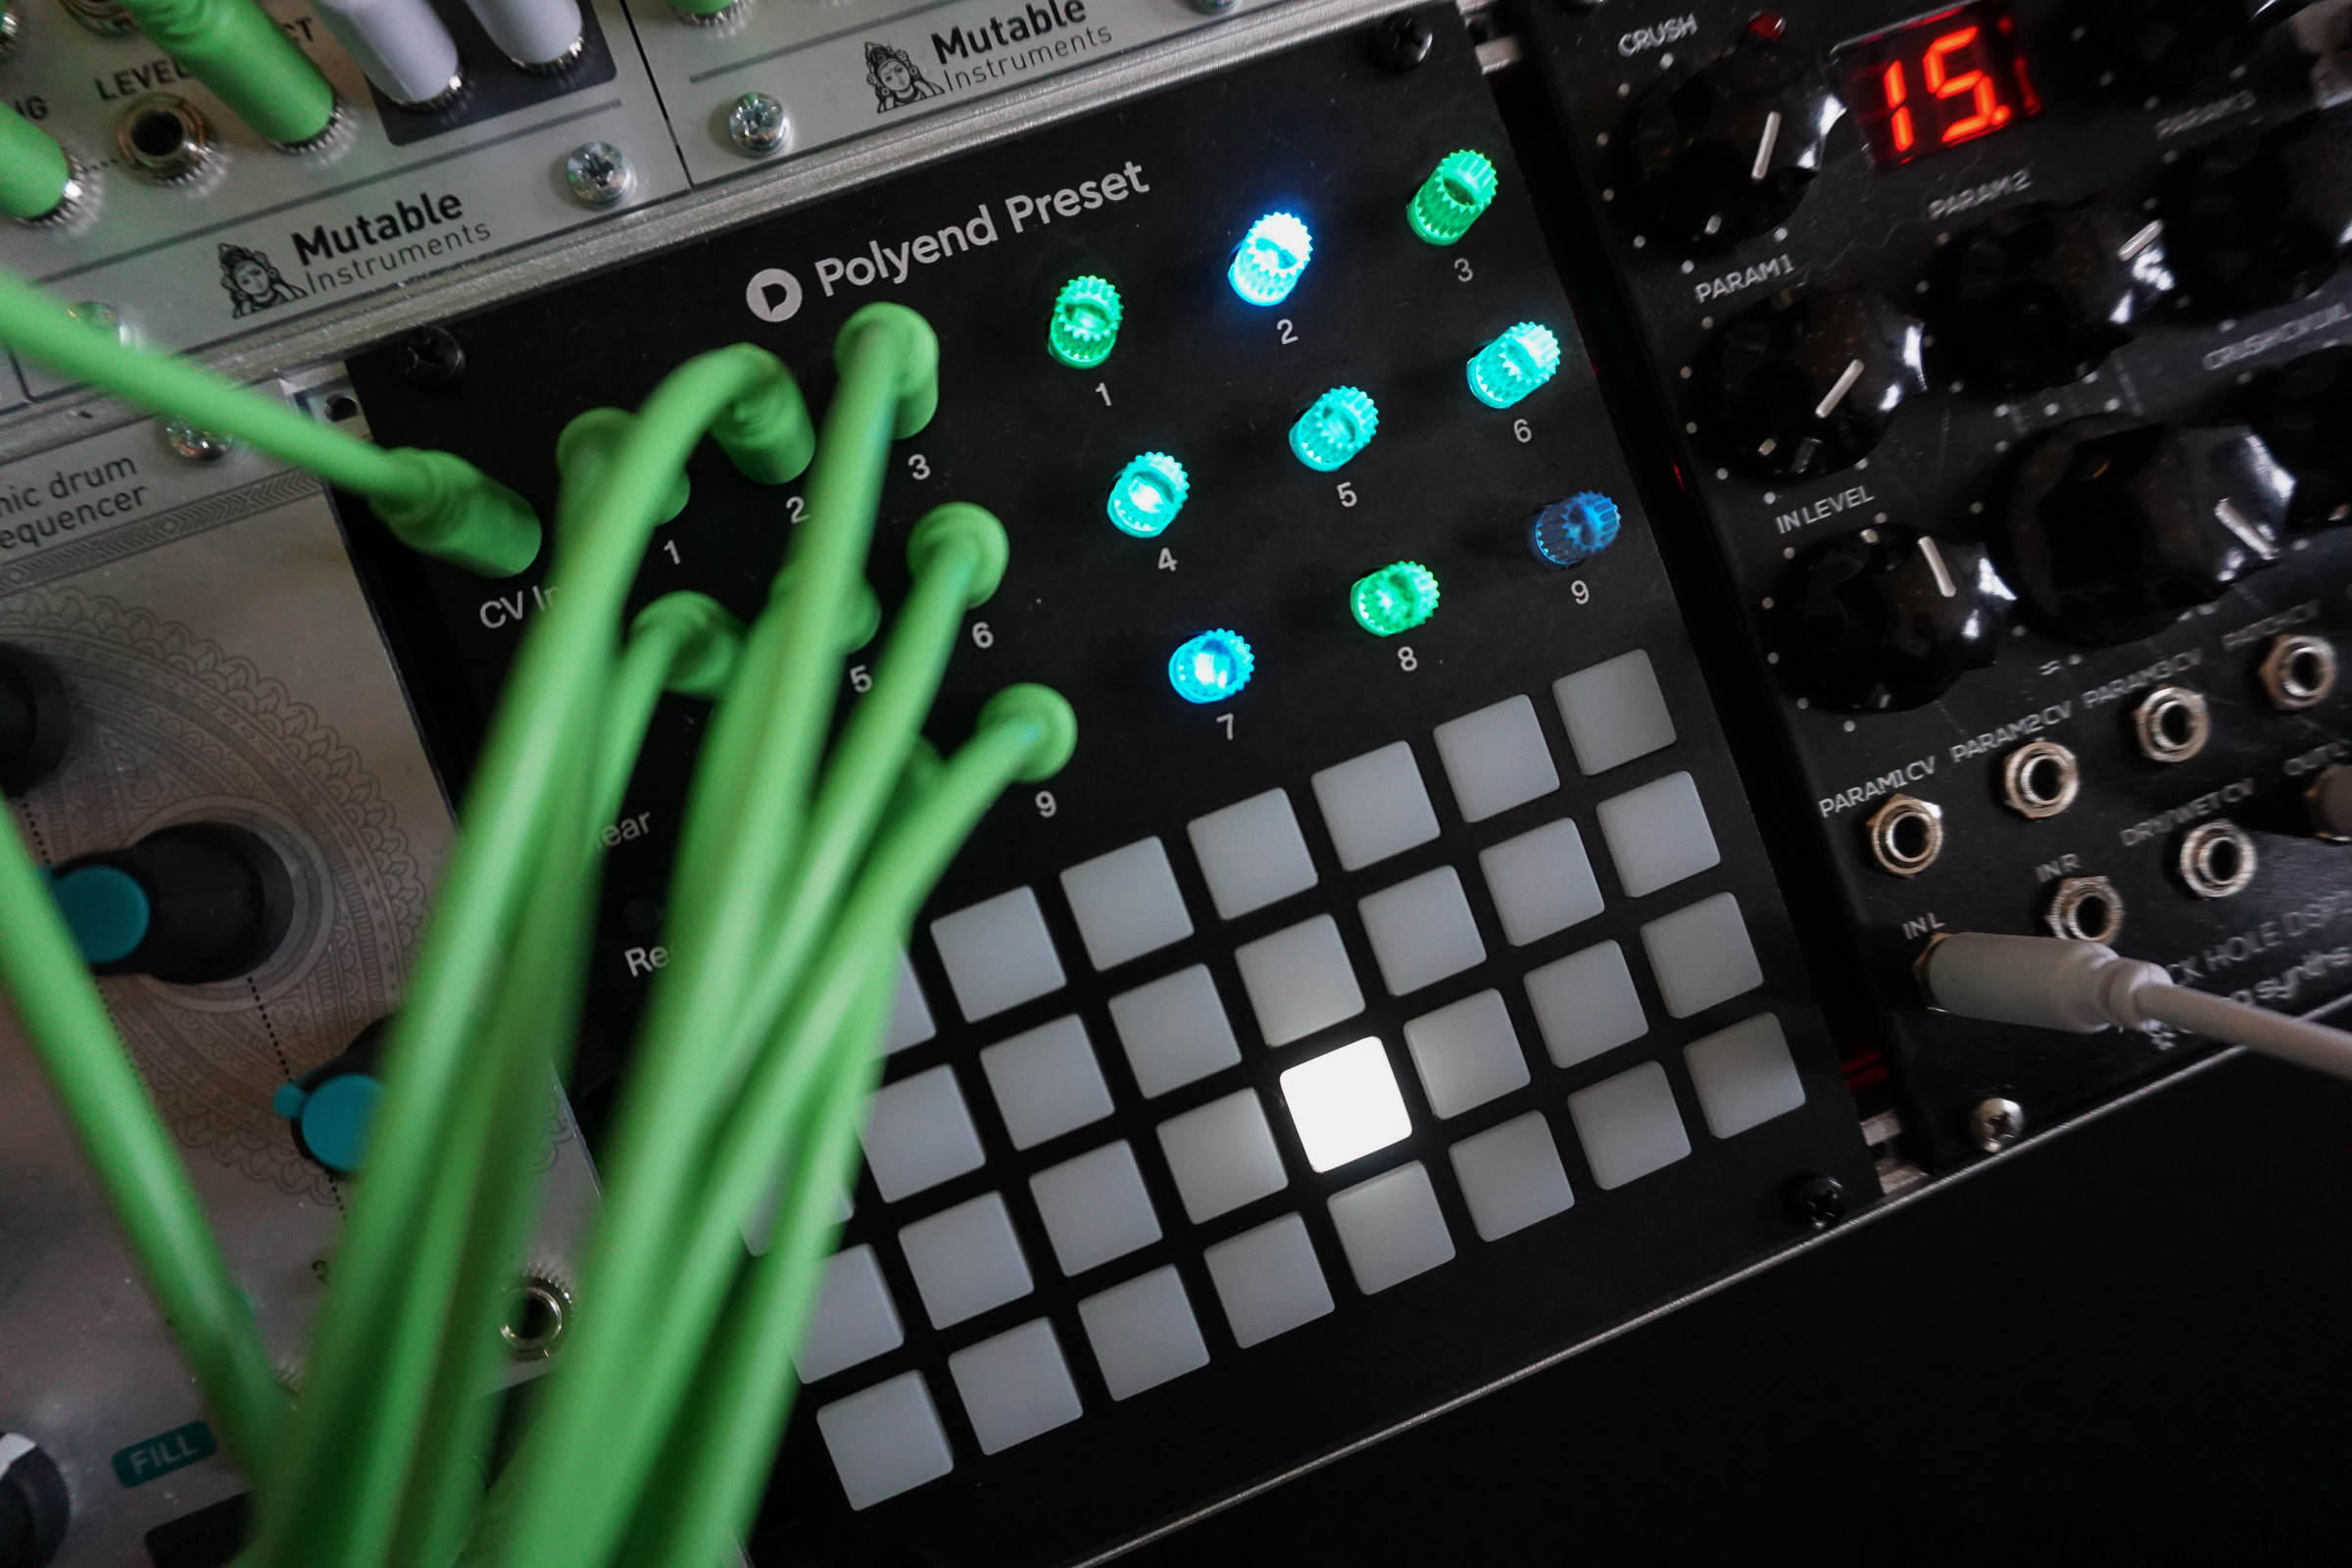 Polyend puts presets in your modular - plus run on a battery